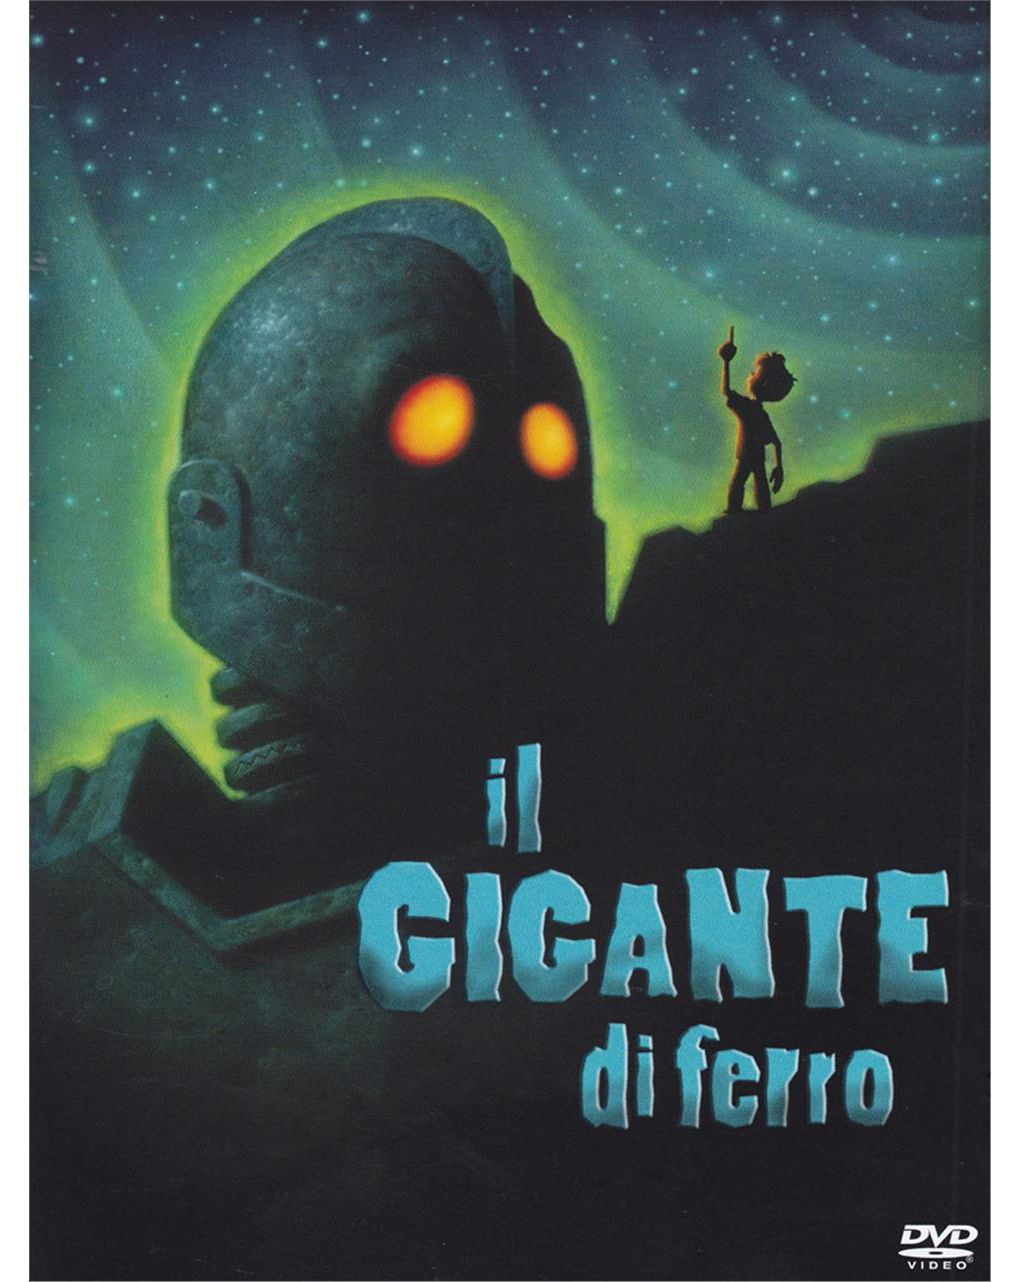 Dvd il gigante di ferro - Video Delta